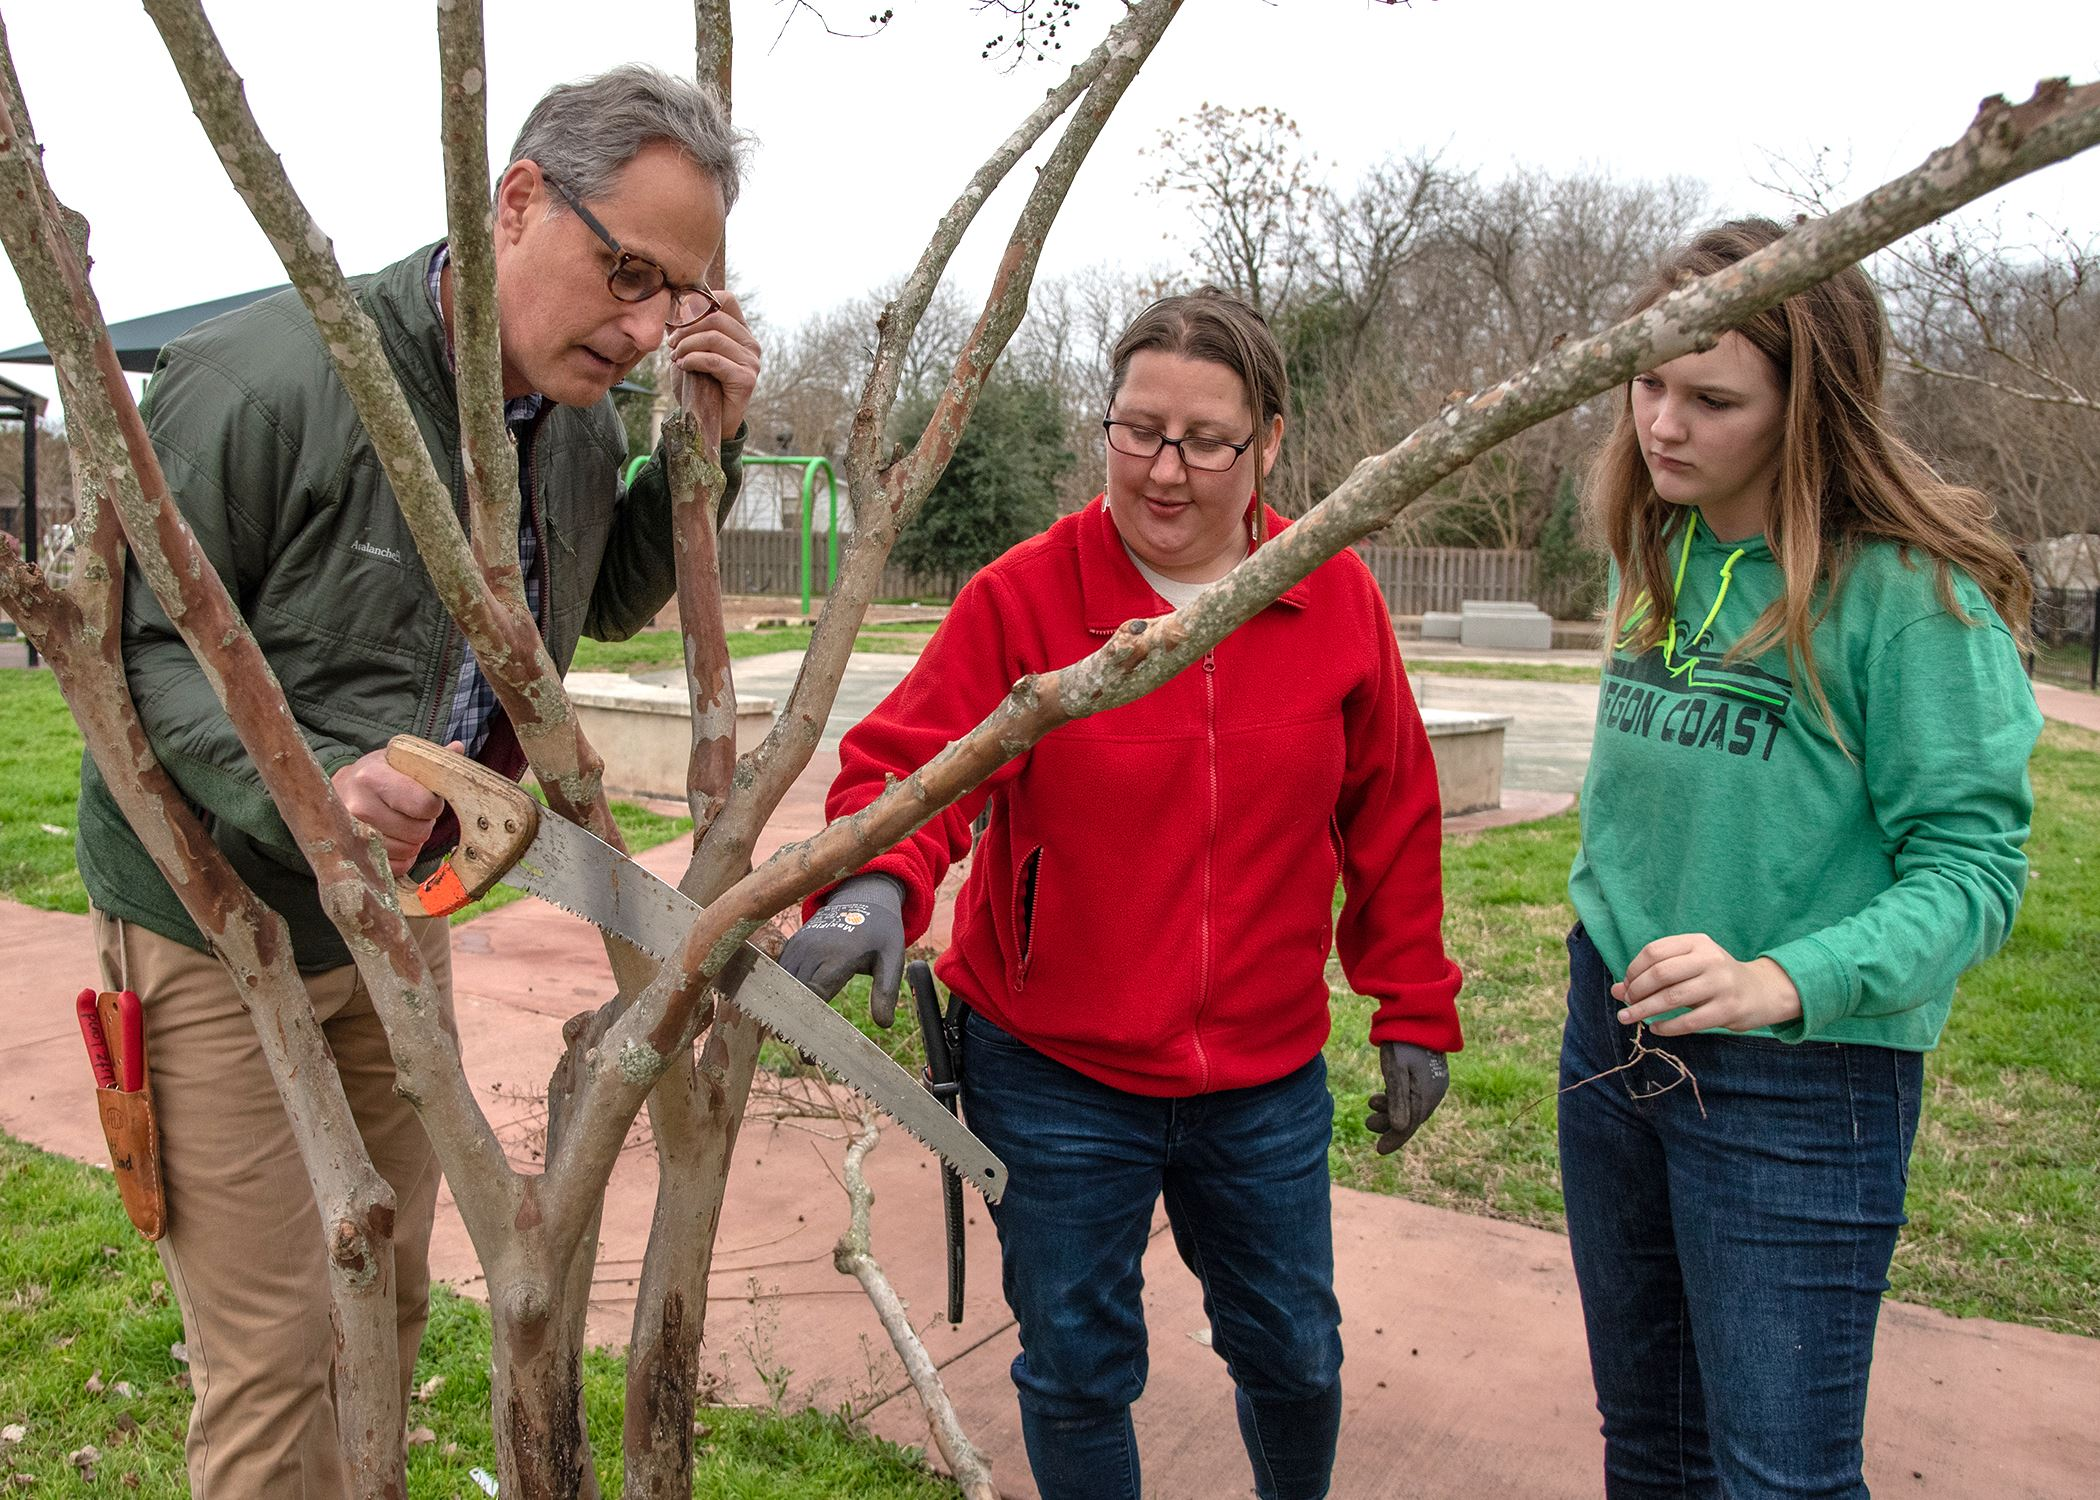 Photo of three people working on a tree, with one person holding a saw against one branch for a trim